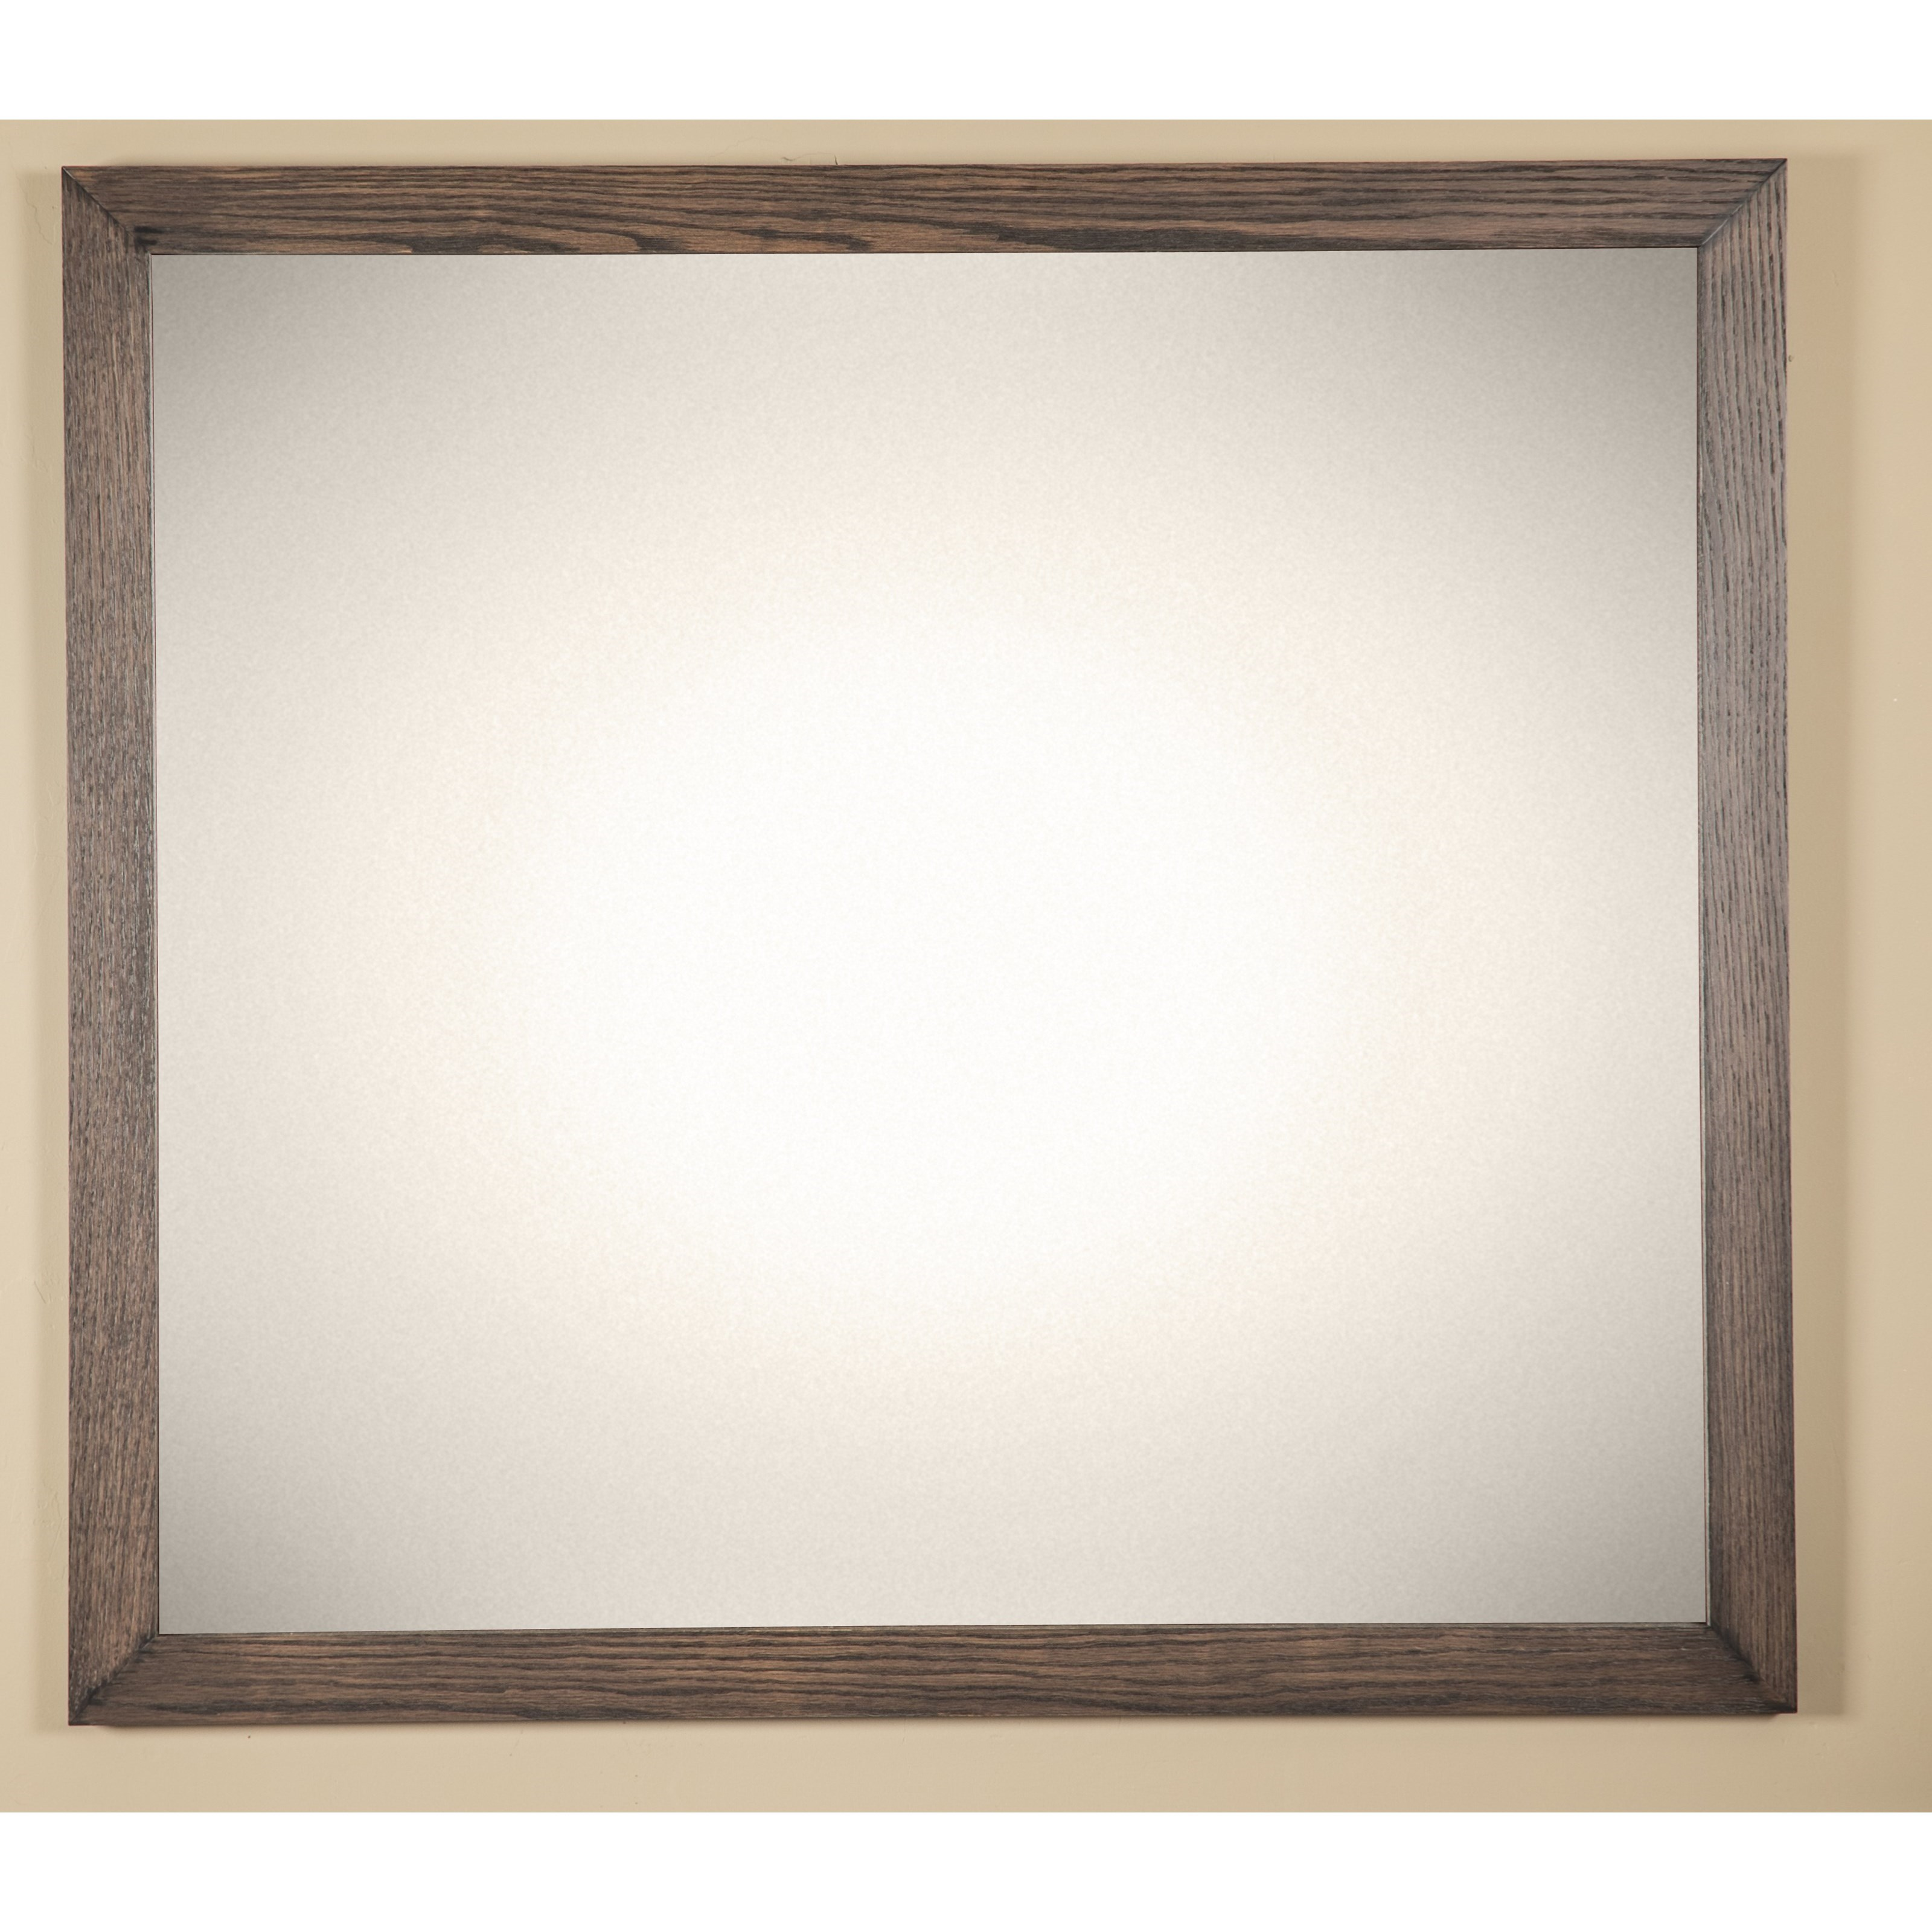 Sullivan Cove Beveled Mirror by Glenmont Furniture at Saugerties Furniture Mart